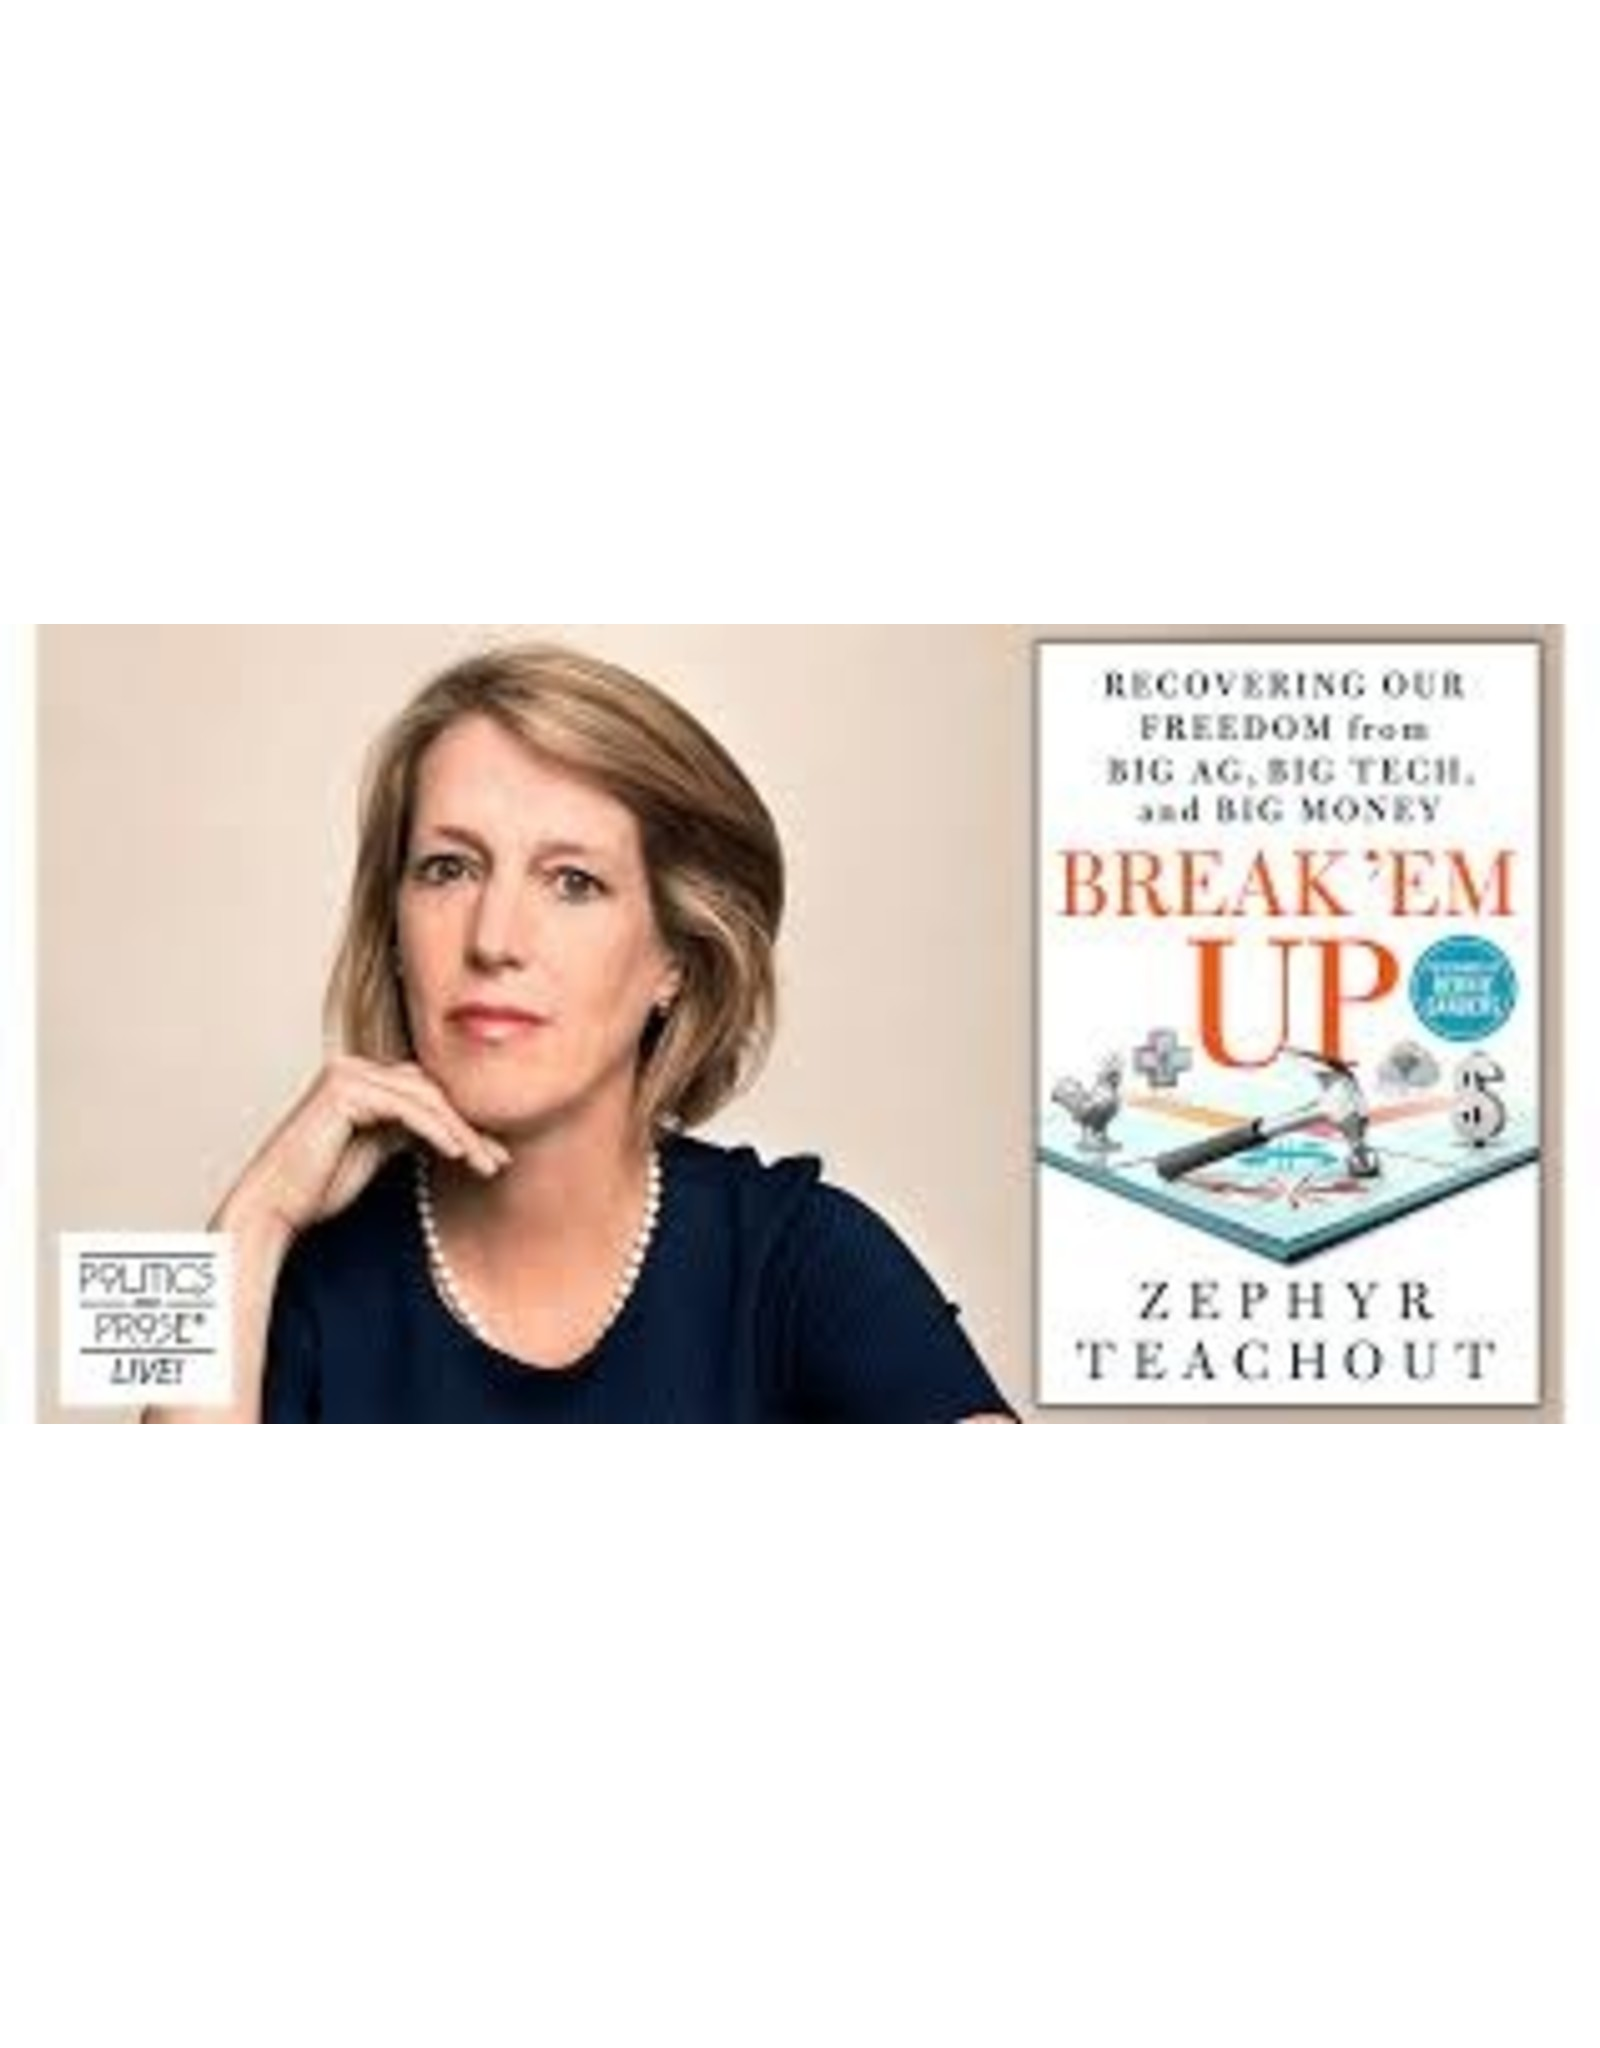 Books BREAK 'EM UP: Recovering our Freedom from Big AG, Big Tech and Big Money By Zephyr Teachout